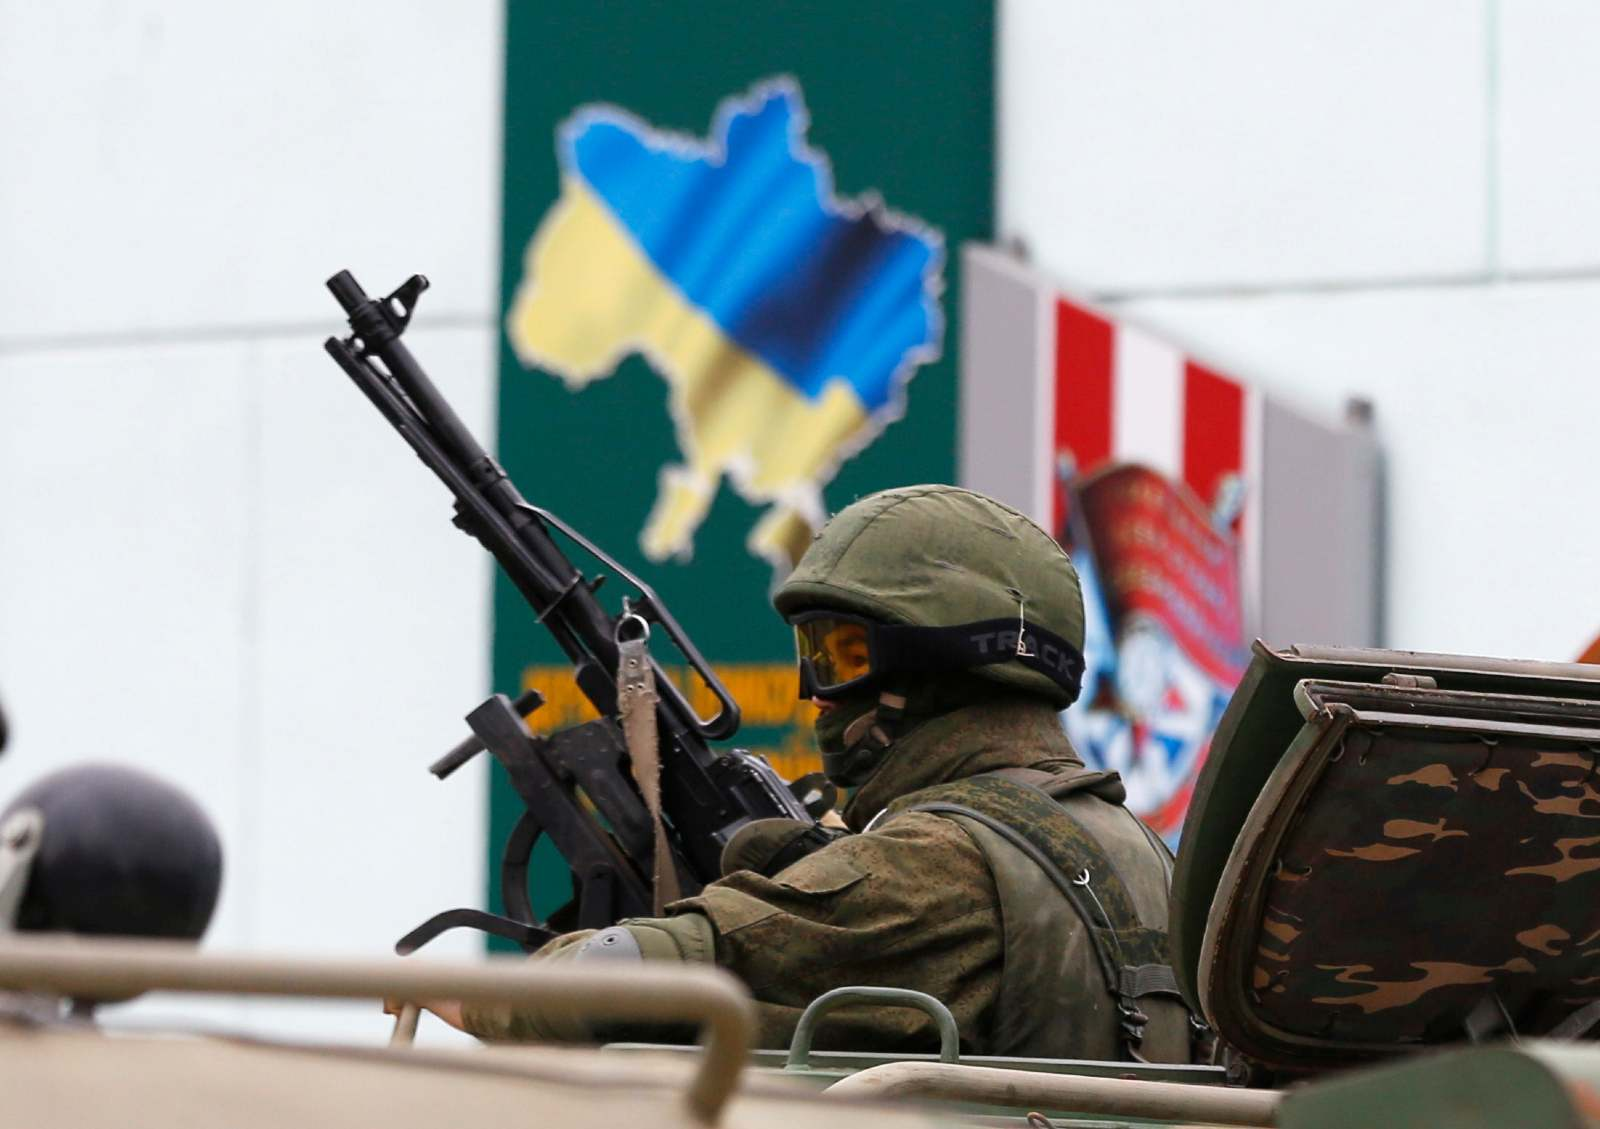 An armed serviceman looks out from a Russian army vehicle outside a Ukrainian border guard post in the Crimean town of Balaclava March 1, 2014. Ukraine accused Russia on Saturday of sending thousands of extra troops to Crimea and placed its military in the area on high alert as the Black Sea peninsula appeared to slip beyond Kiev's control.